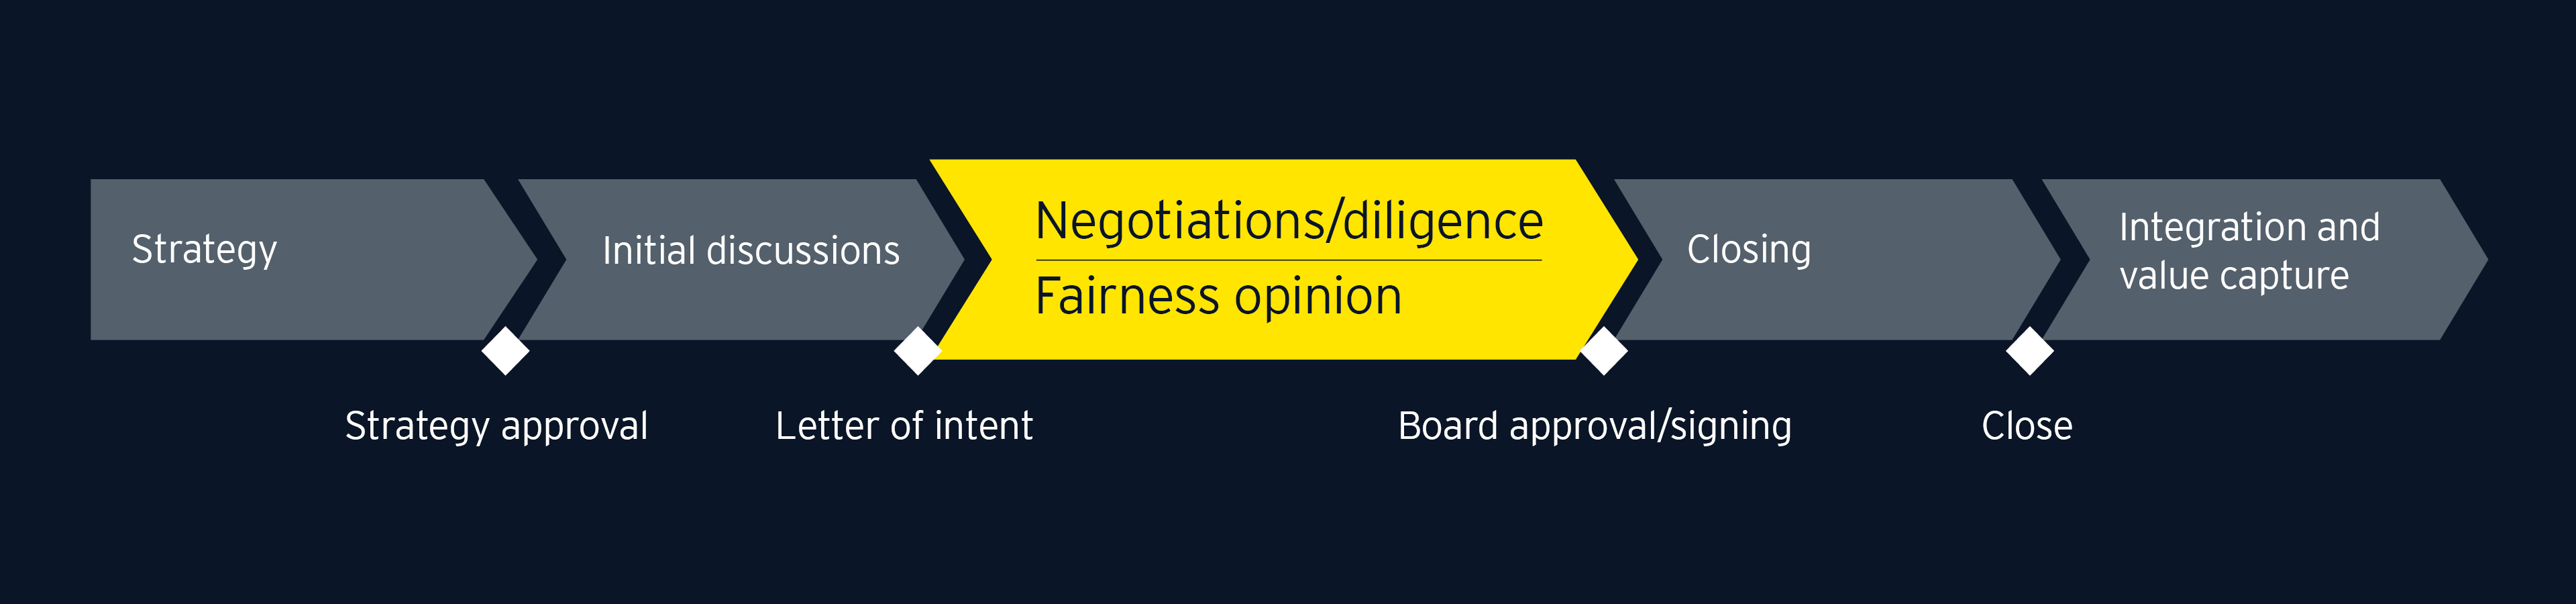 agreement sign up with fairness opinion